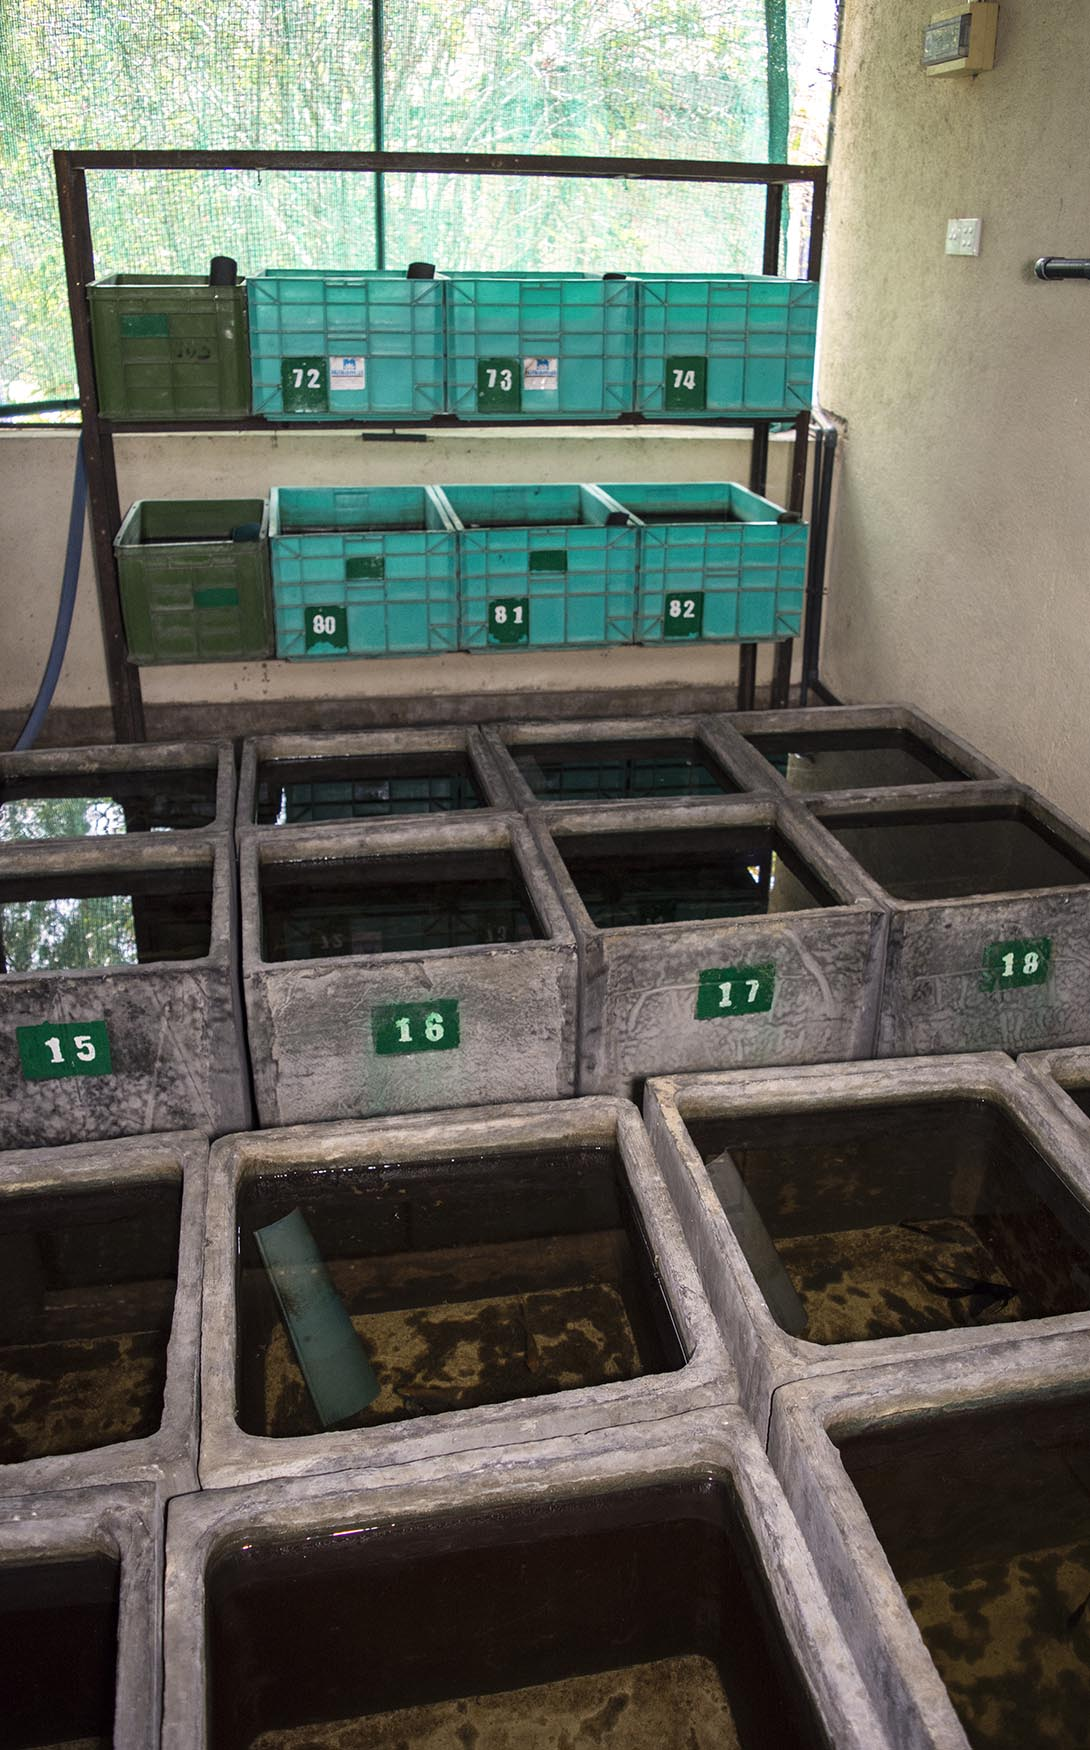 An Angelfish breeding room housing a number of broodstock pairs. Breeders here work on improving efficiency and troubleshooting problems the commercial producers experience